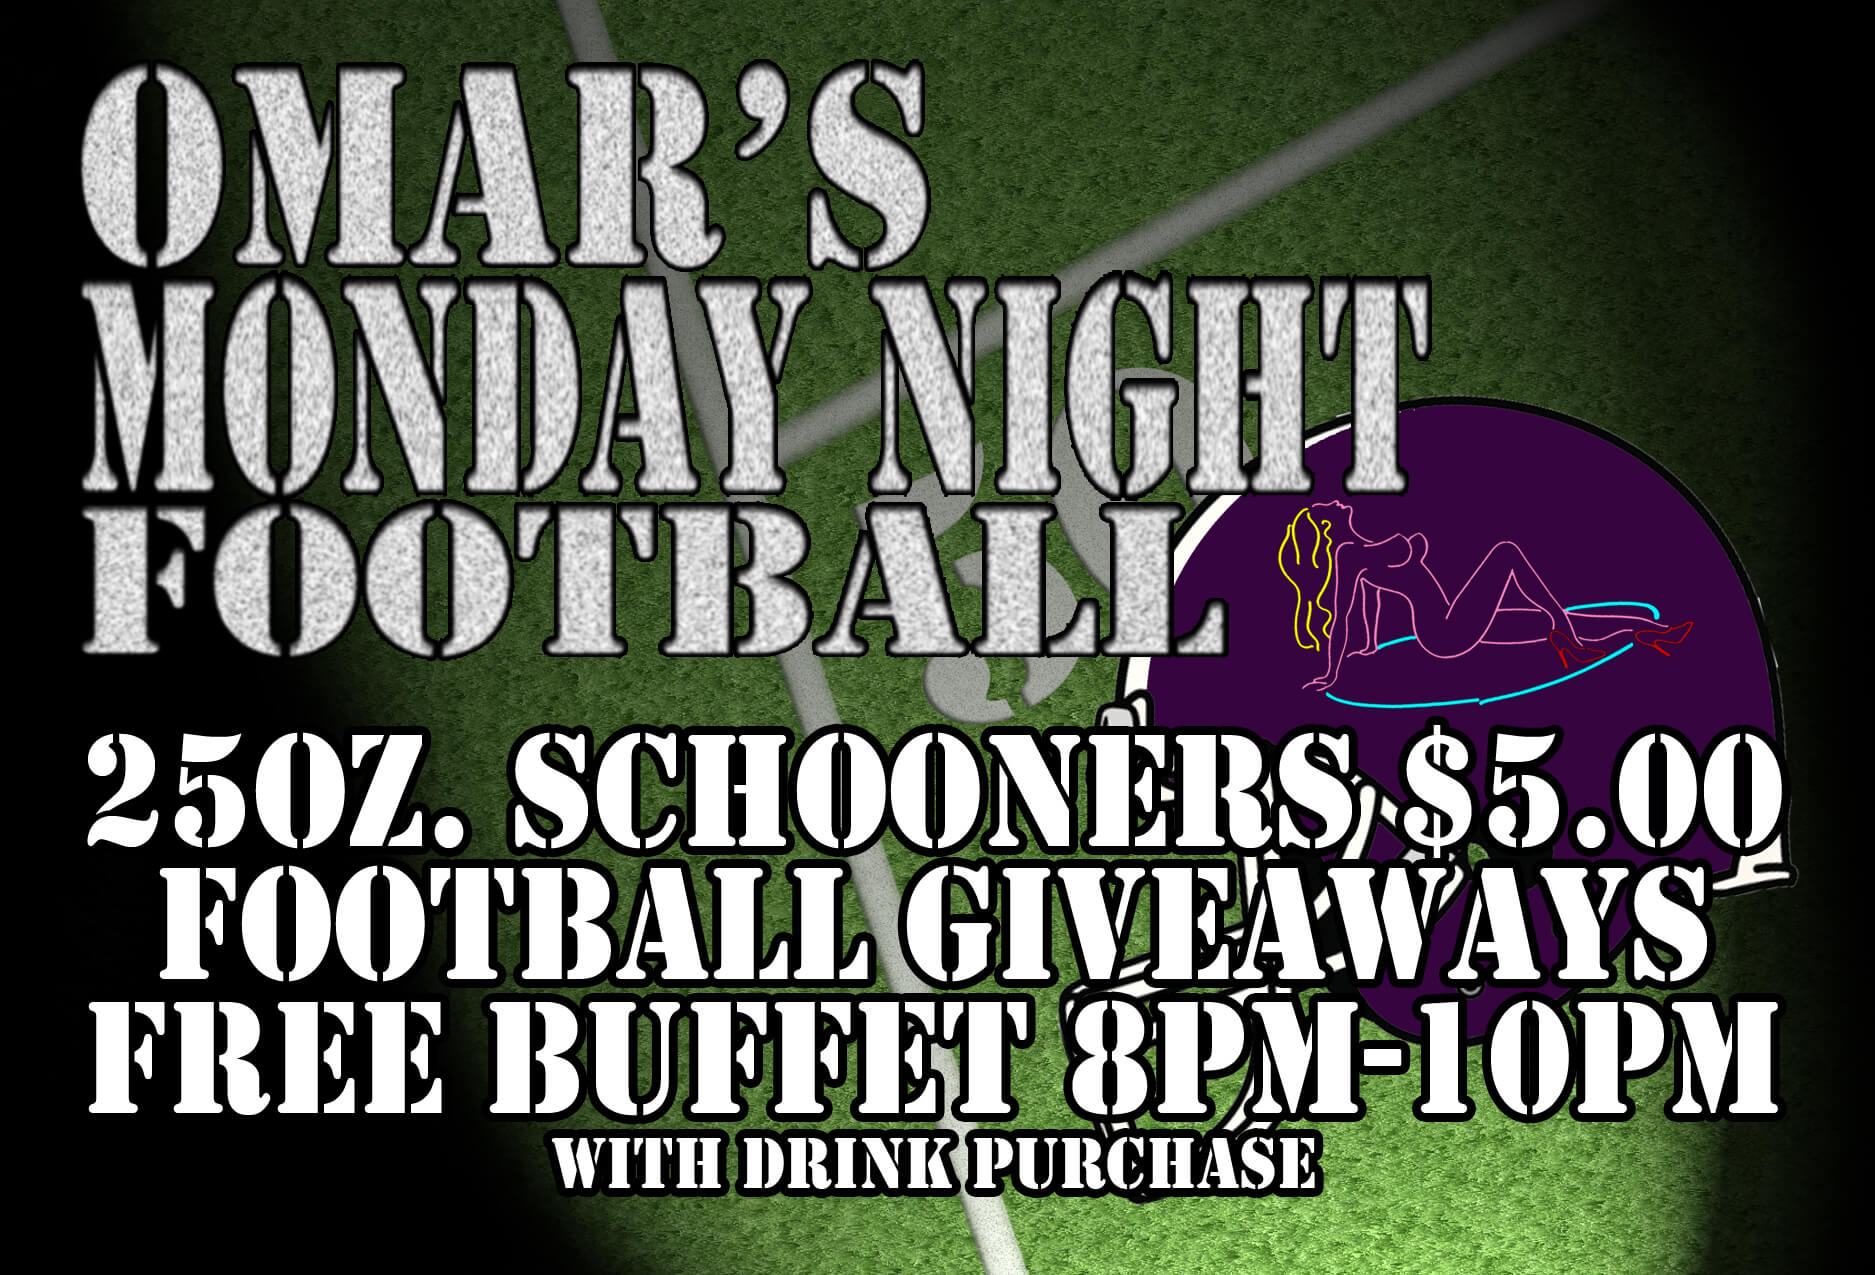 Omar's Monday Night Football